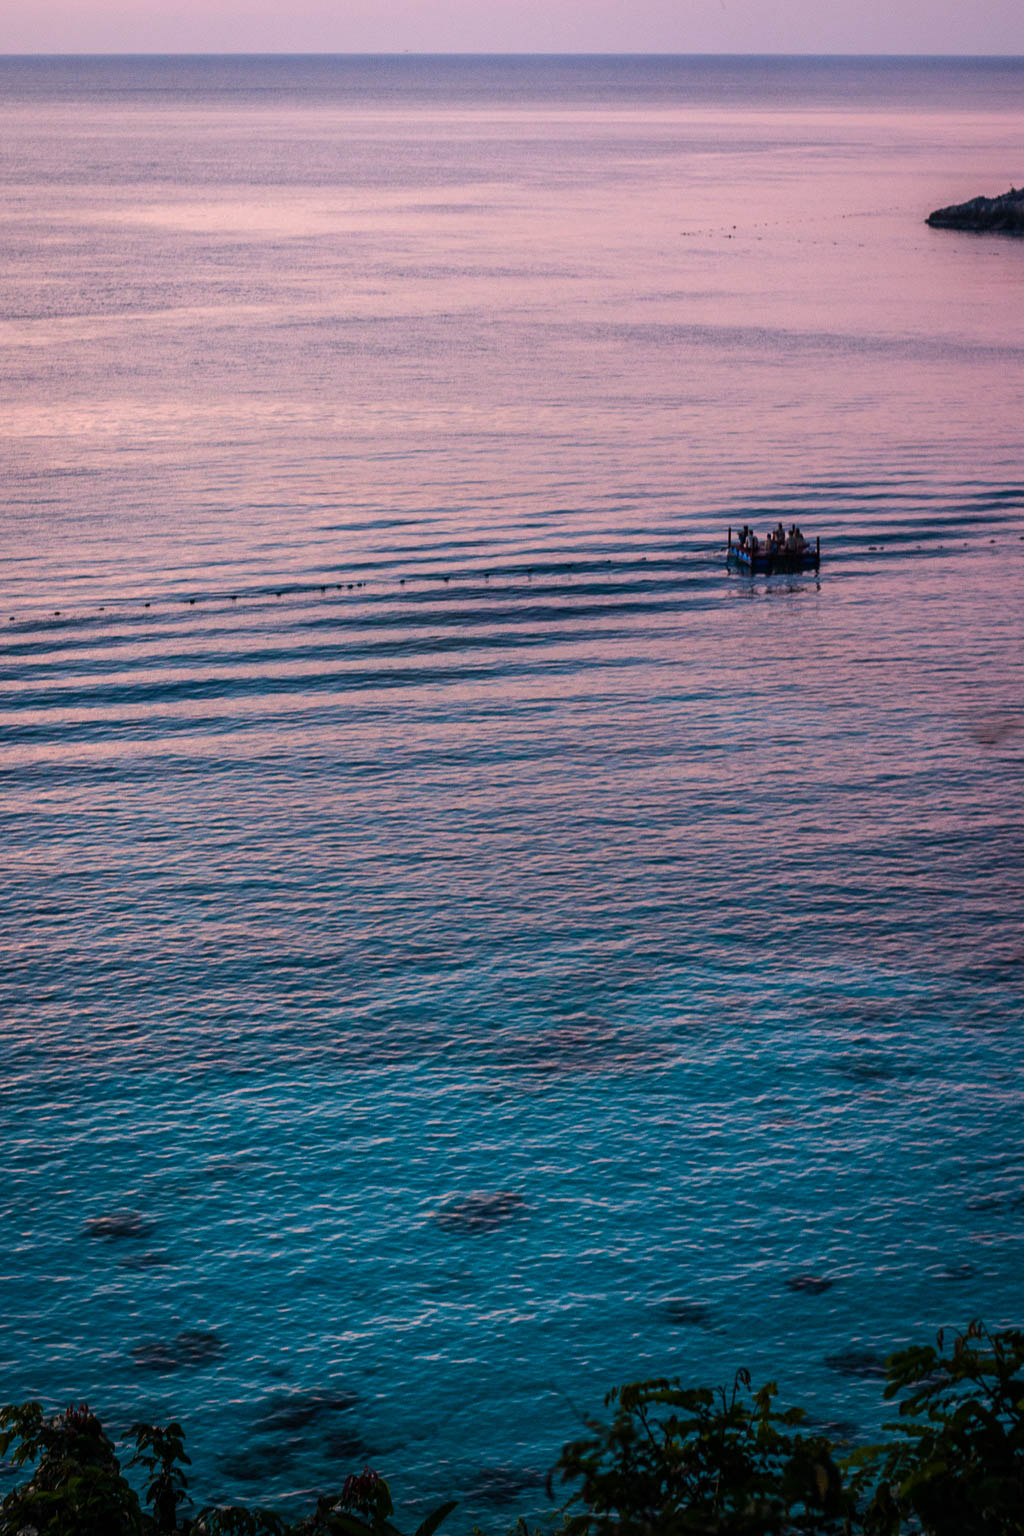 Sunset in the Perhentian Islands, Malaysia.